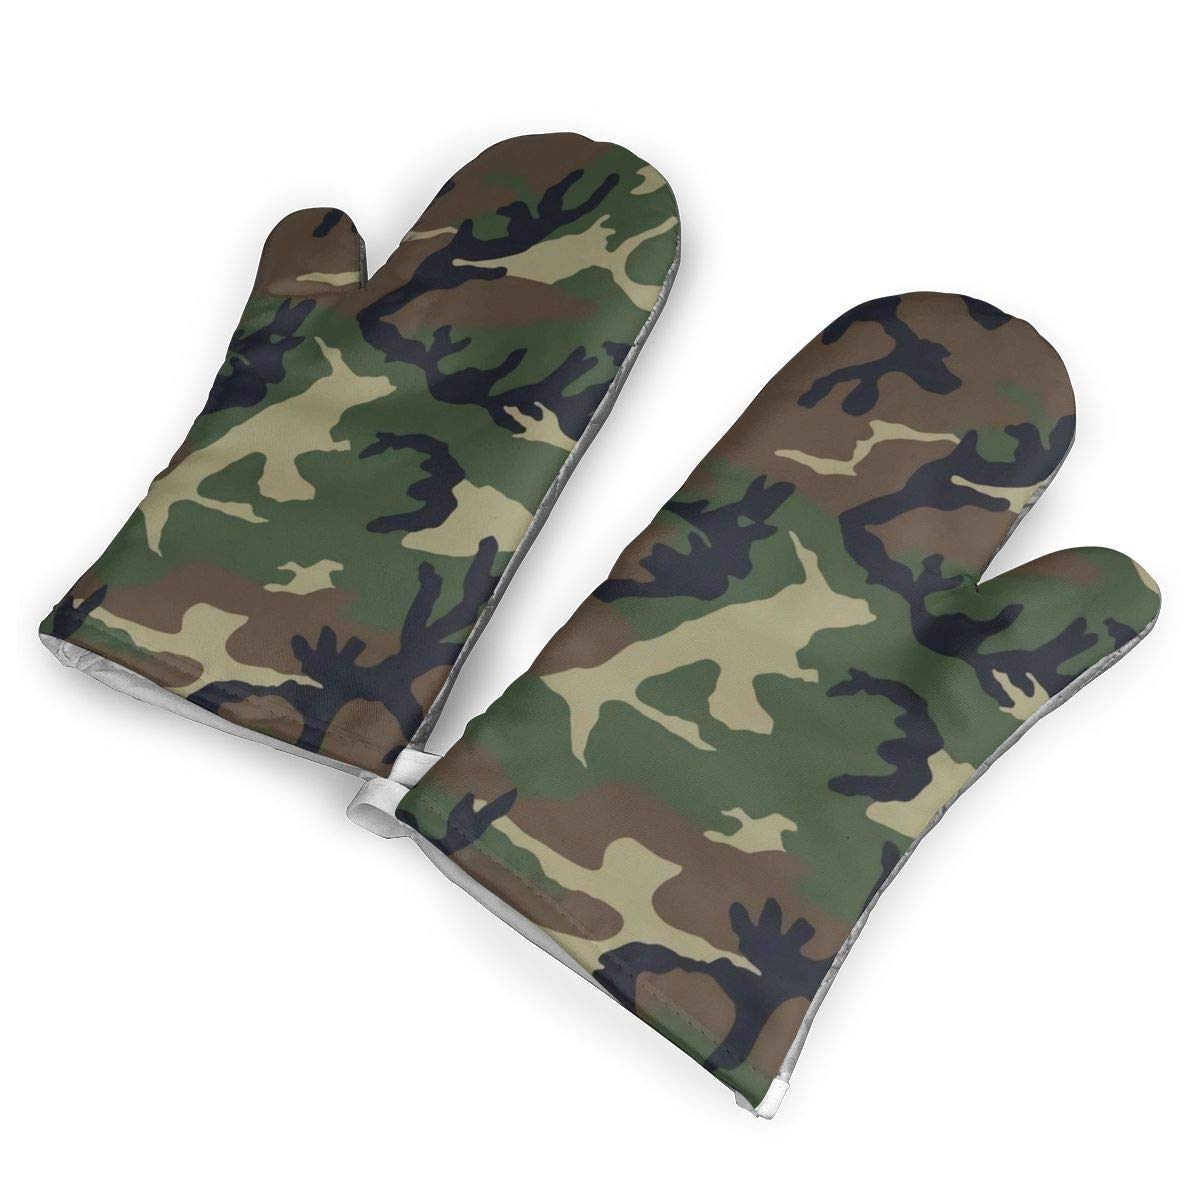 M81 Woodland Camo Heat Resistant Oven Gloves,Non-Slip Easy to Use Oven Mitts for Cooking